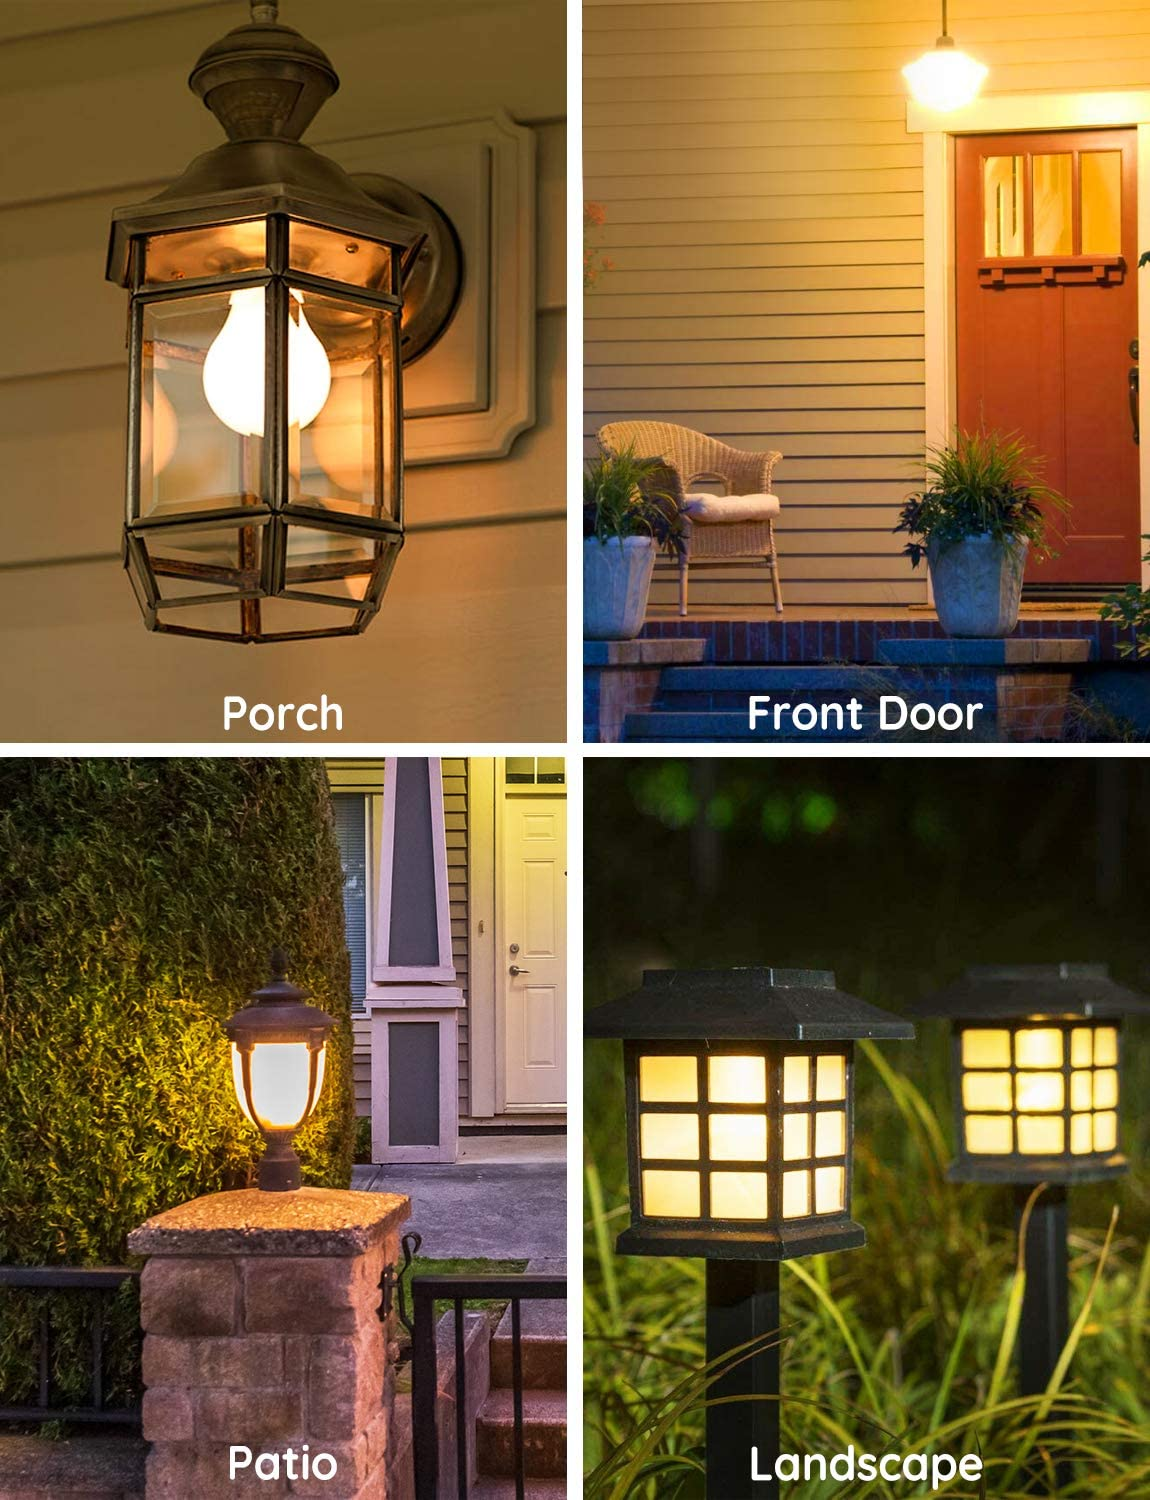 E26//E27 Energy Saving Blubs for Garage Stairs Porch Courtyard Basement Patio 2 Pack Soft White Light Blubs 7W 2700K 600lm Auto On//Off Smart Bulb Govee Dusk to Dawn Light Bulbs Outdoor